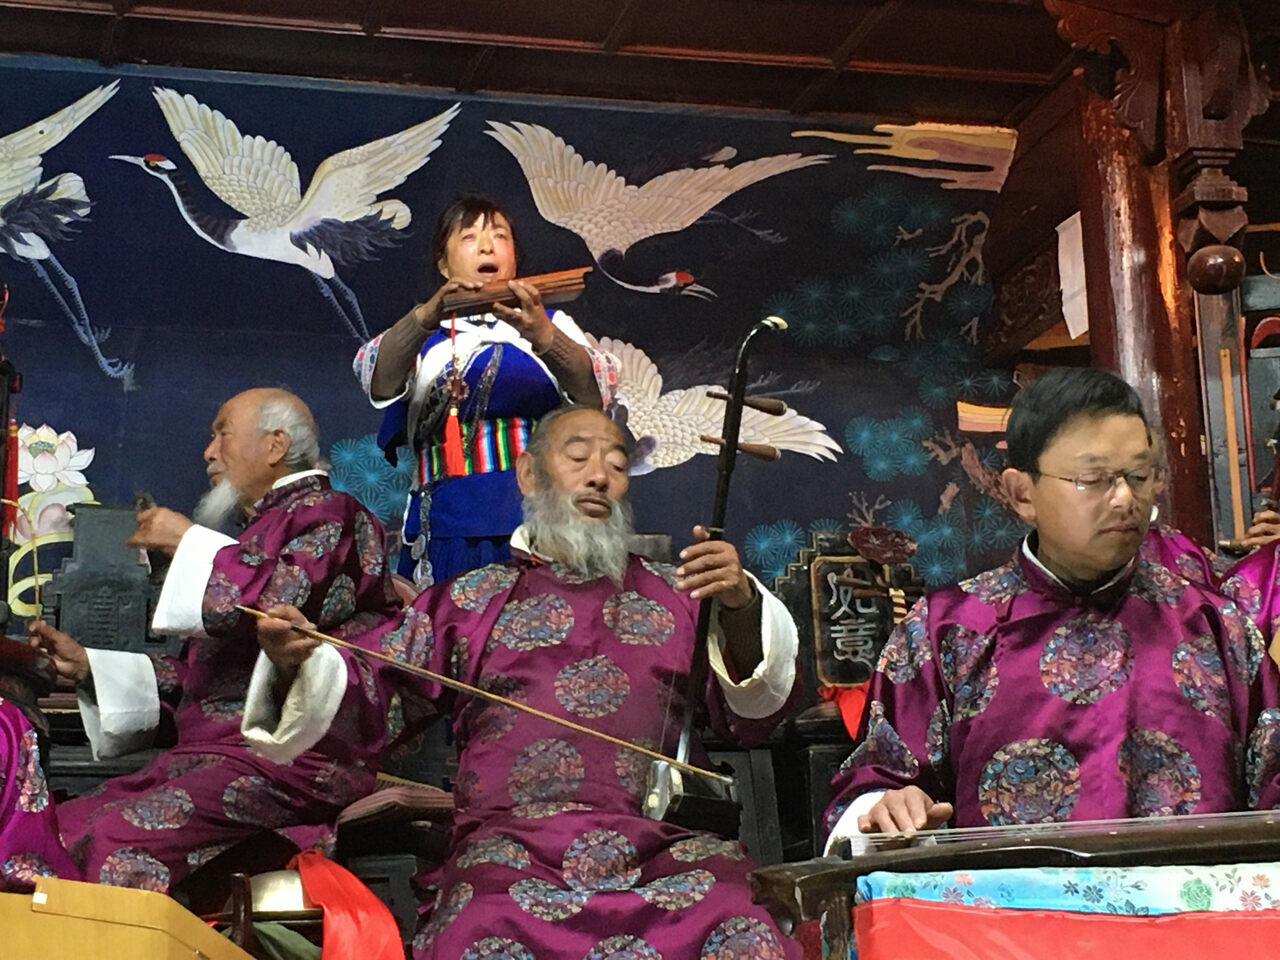 These Naxi musicians play without sheet music on centuries-old instruments, which were once hidden underground during the Cultural Revolution.